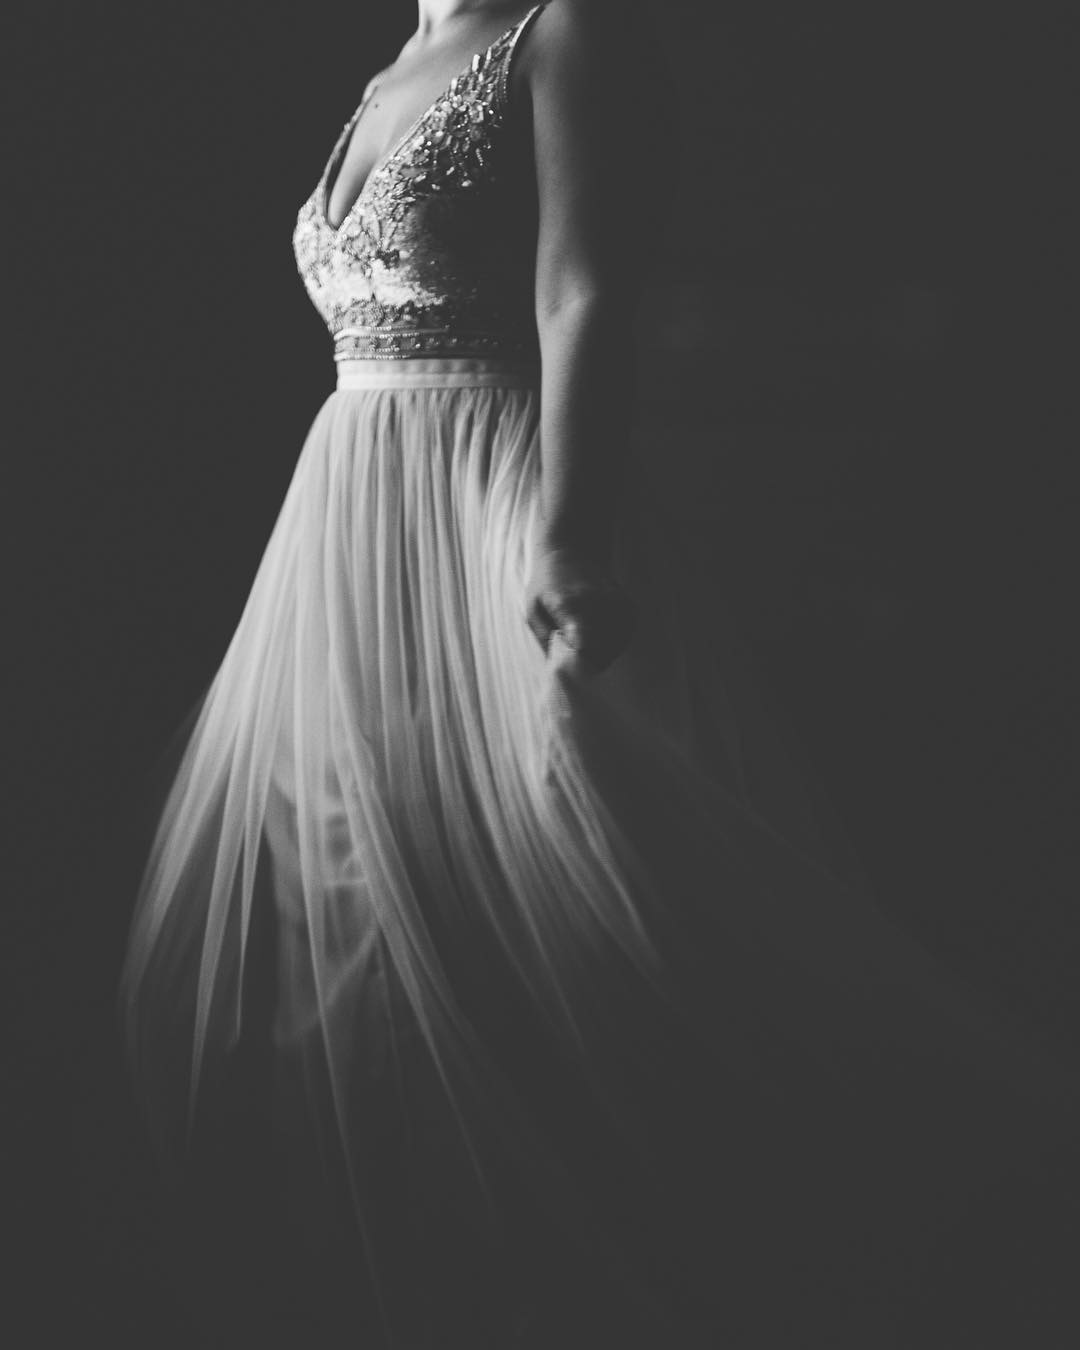 A black and white image of a bride wearing her wedding gown